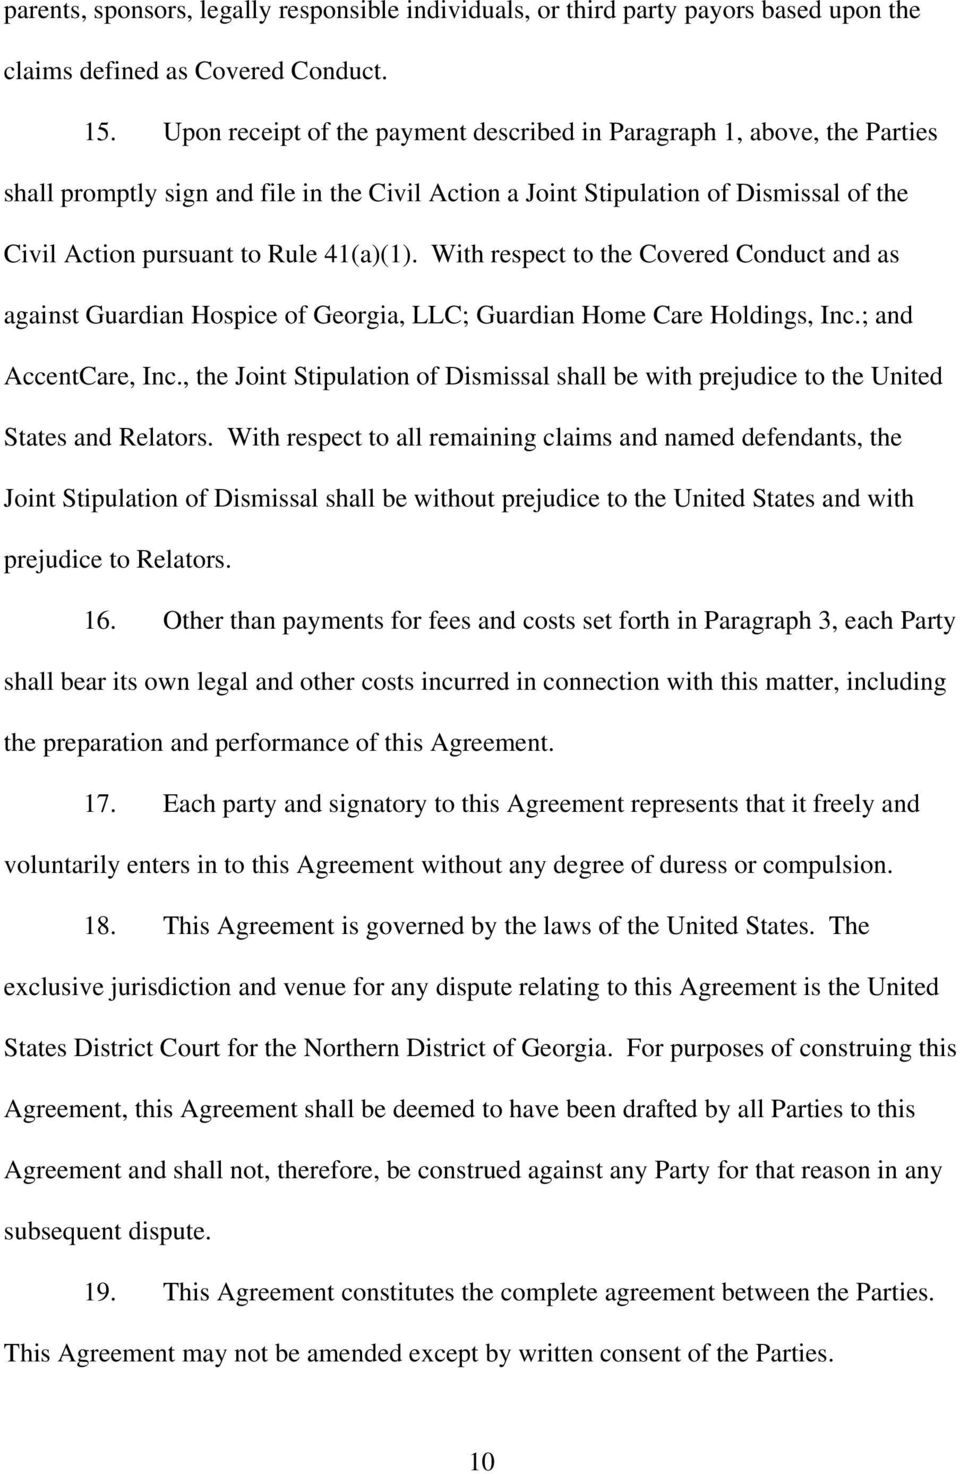 41(a)(1). With respect to the Covered Conduct and as against Guardian Hospice of Georgia, LLC; Guardian Home Care Holdings, Inc.; and AccentCare, Inc.